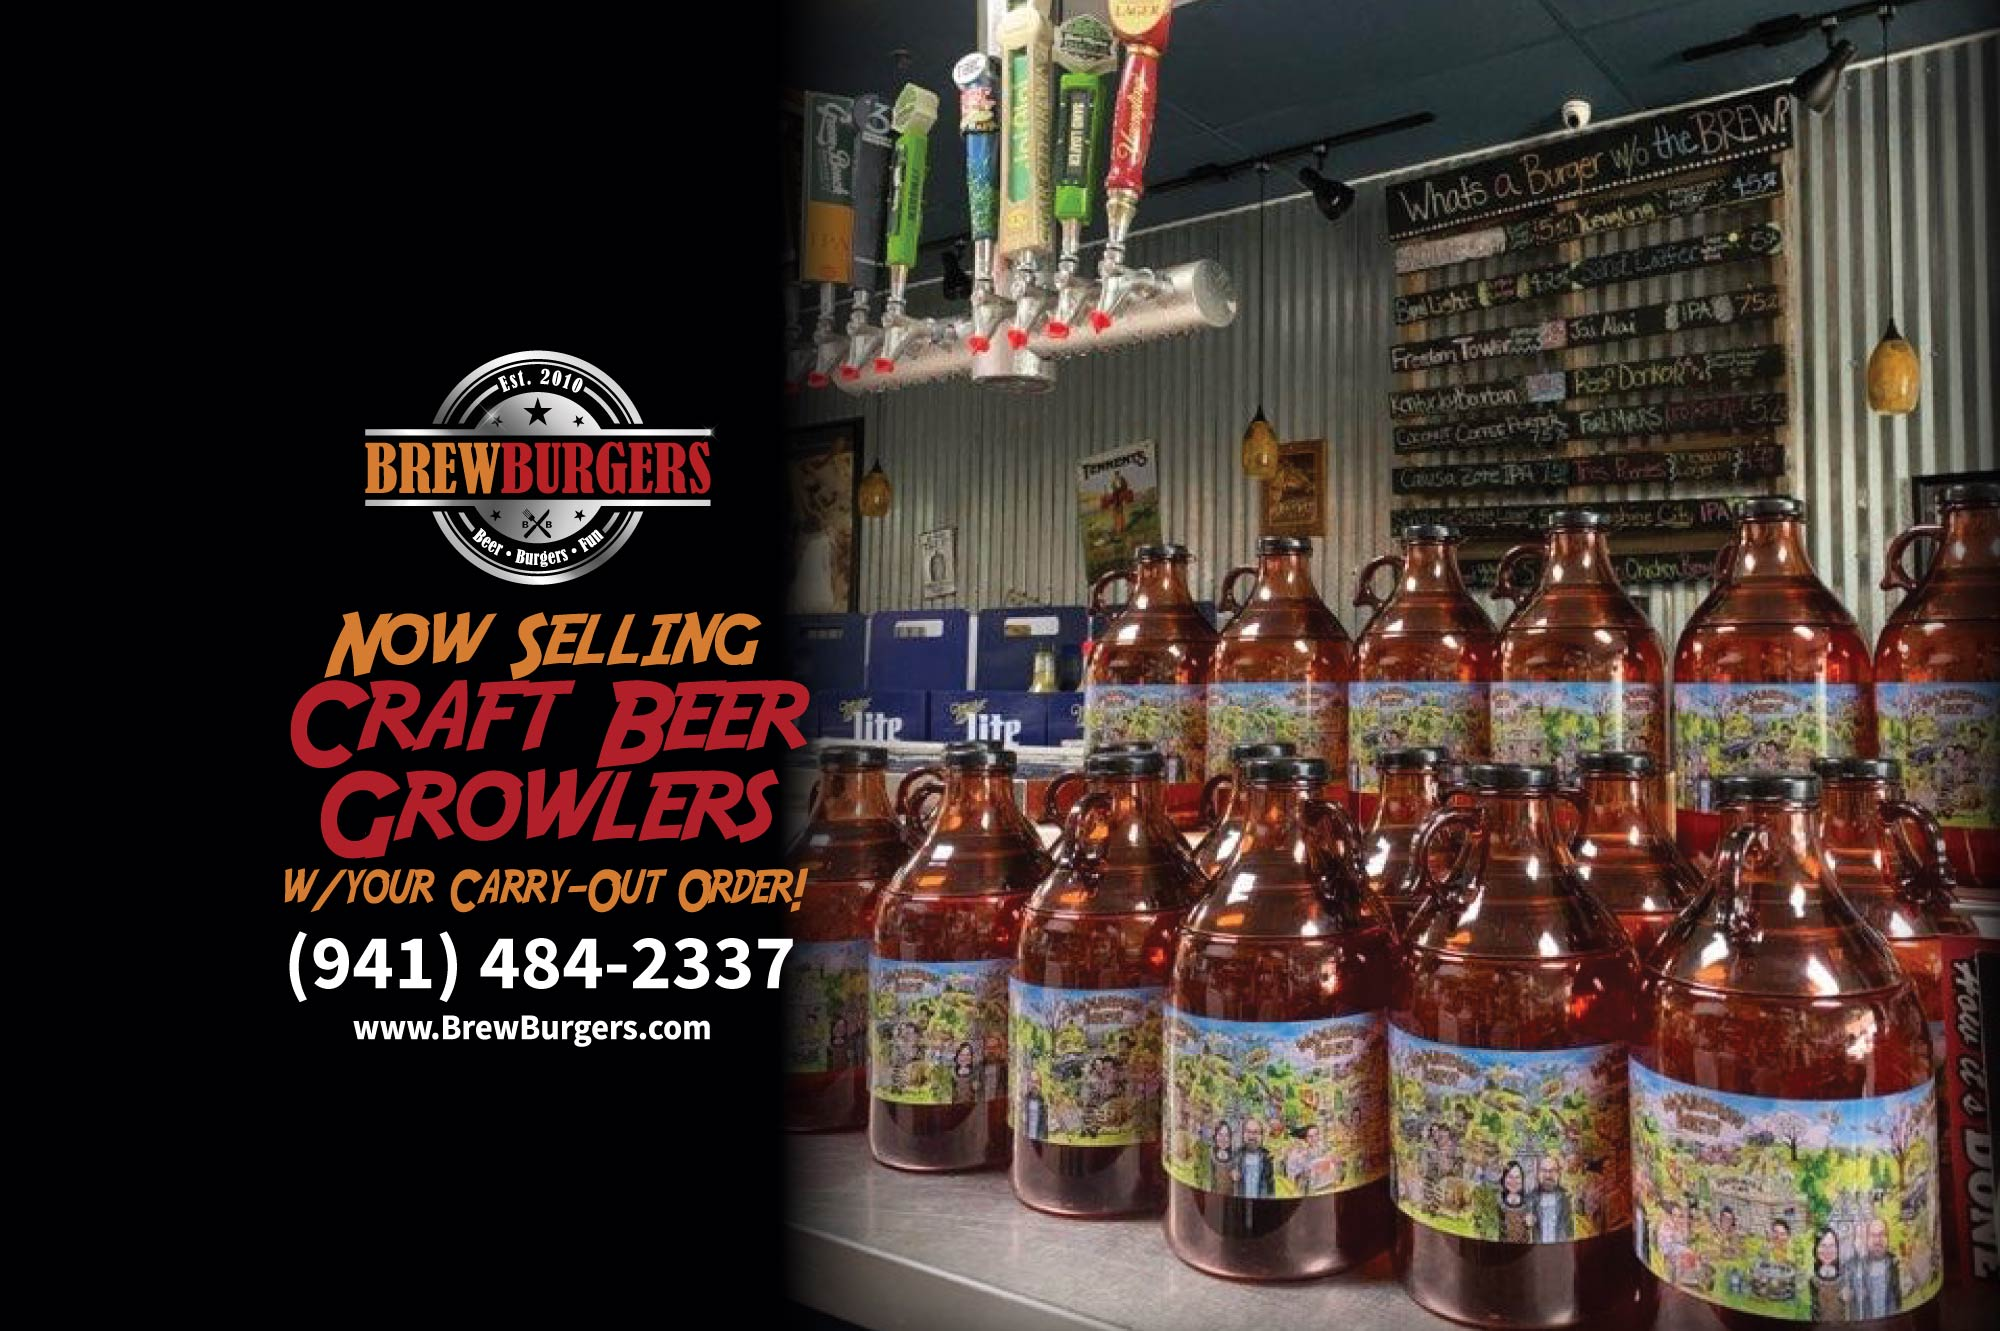 this is a photo of craft beer growlers with a message stating